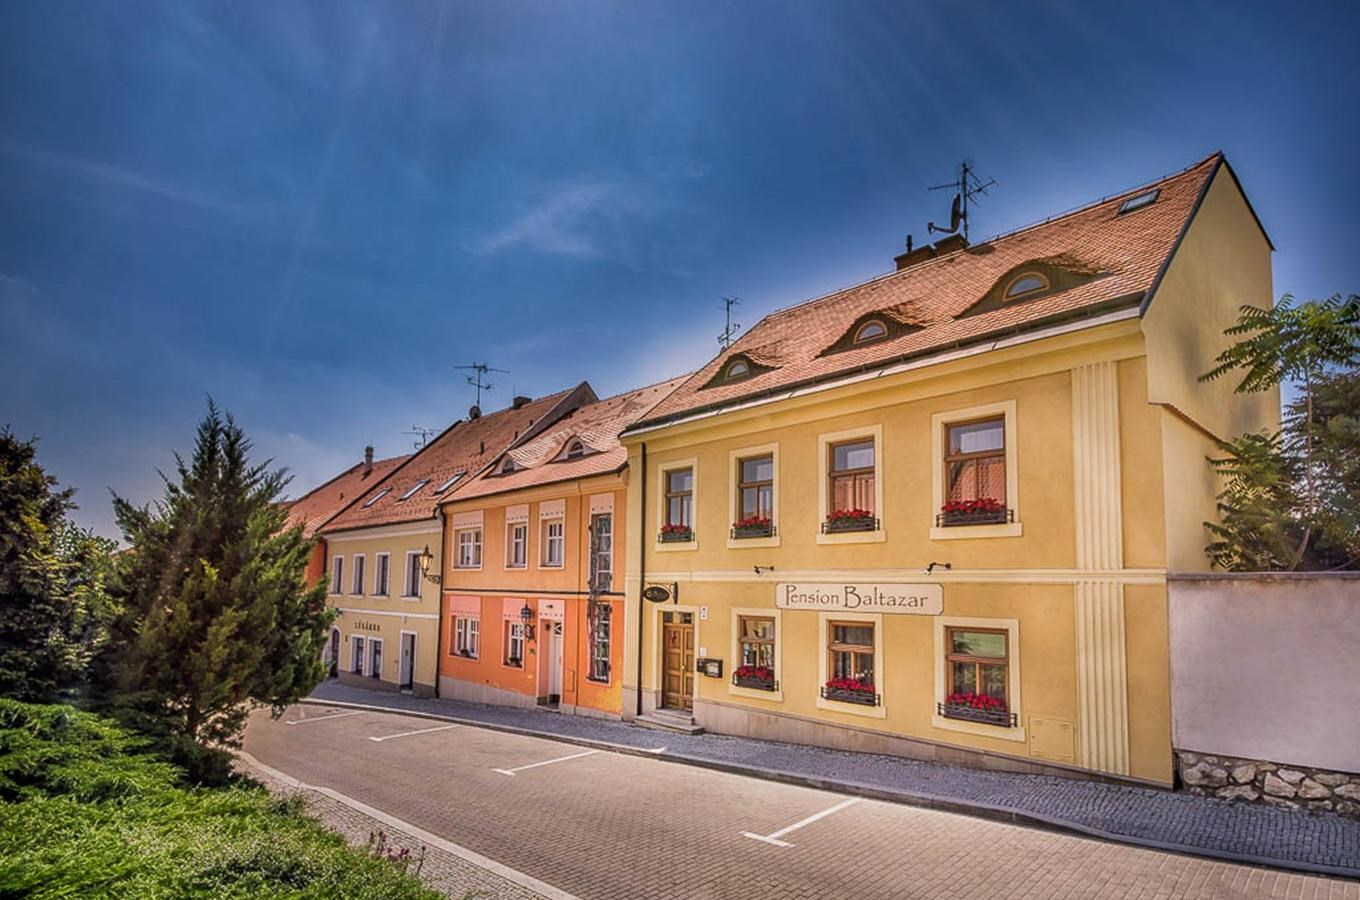 Pension Baltazar Mikulov